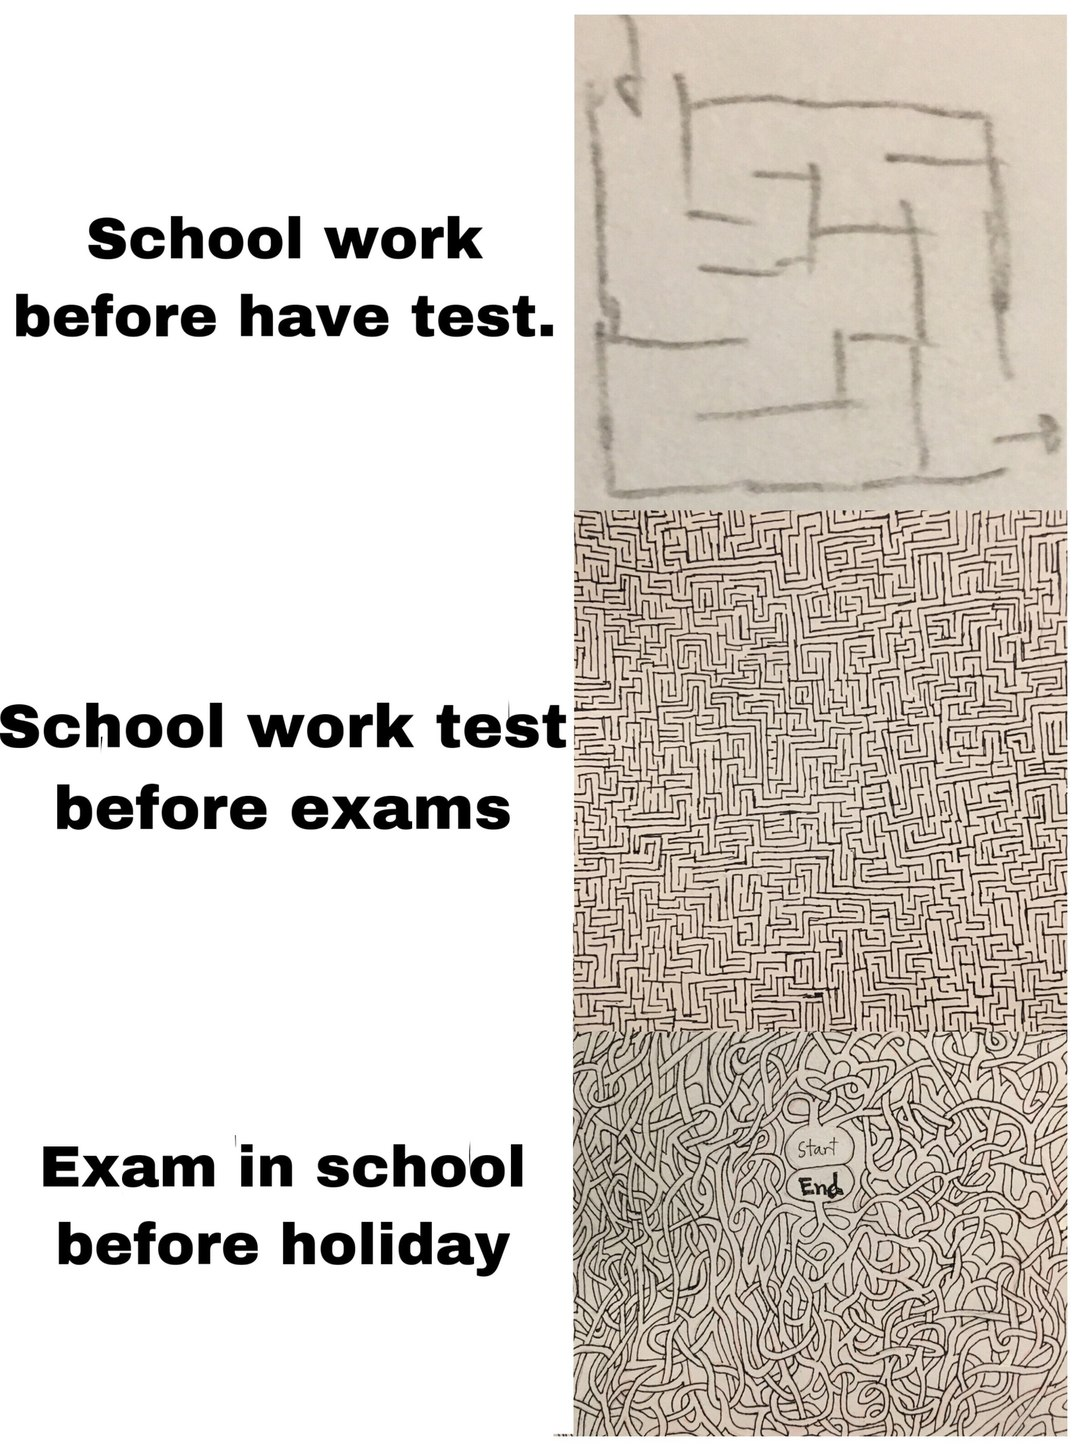 school bay before holiday - meme